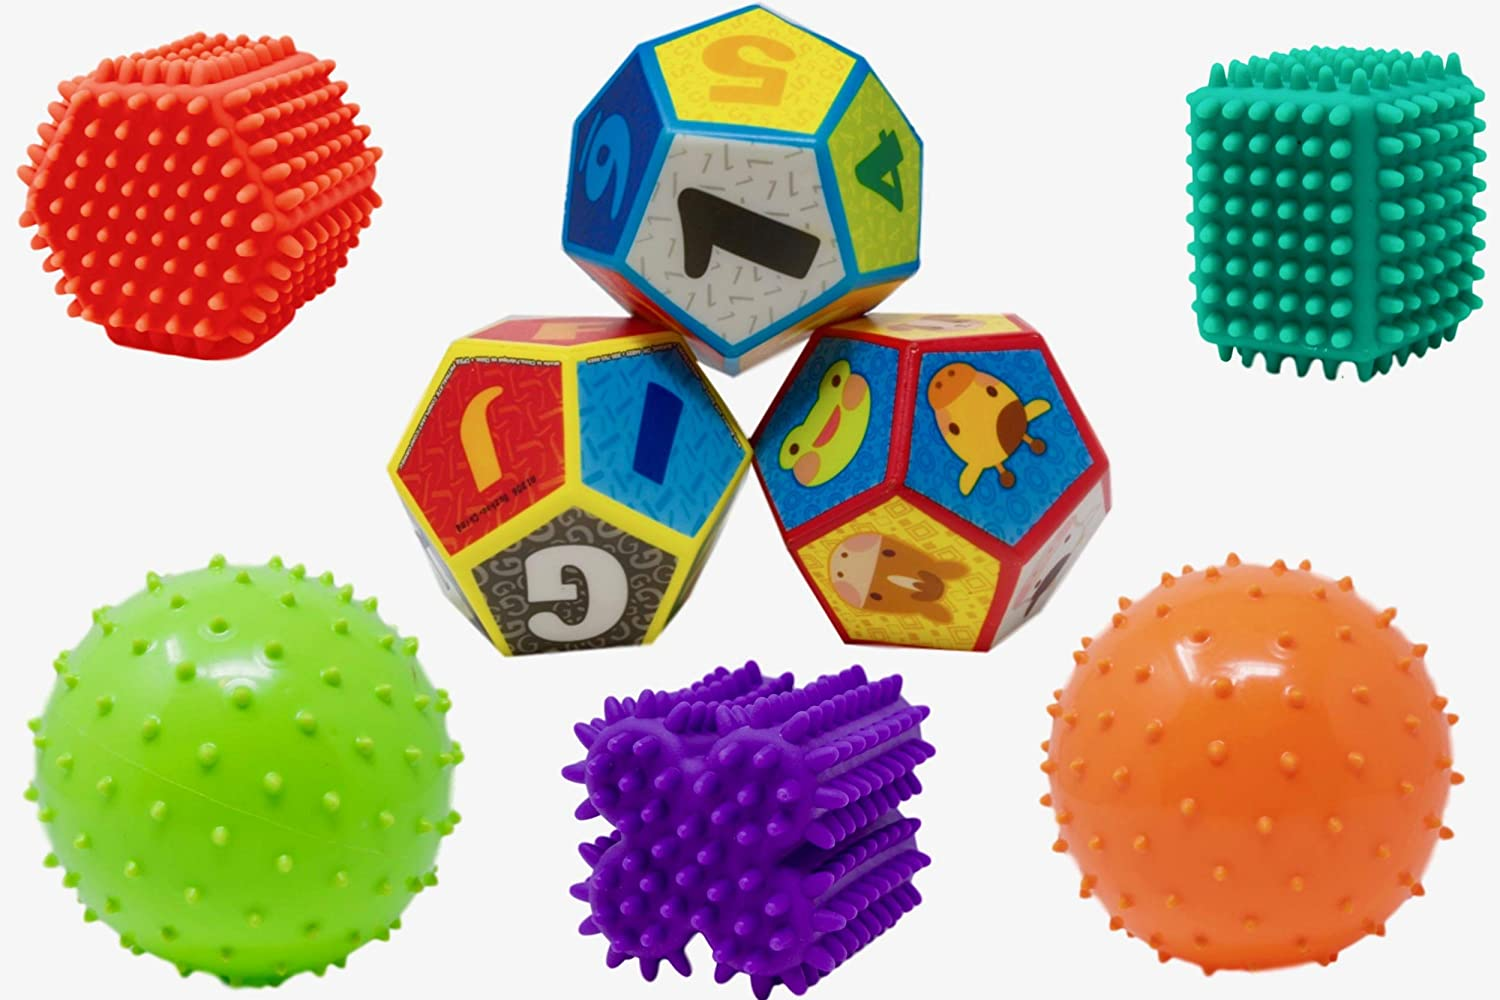 Colors May Vary KT Sensory Knobby Ball Shapes and Foamy Dice Combo for Children Ages 3+